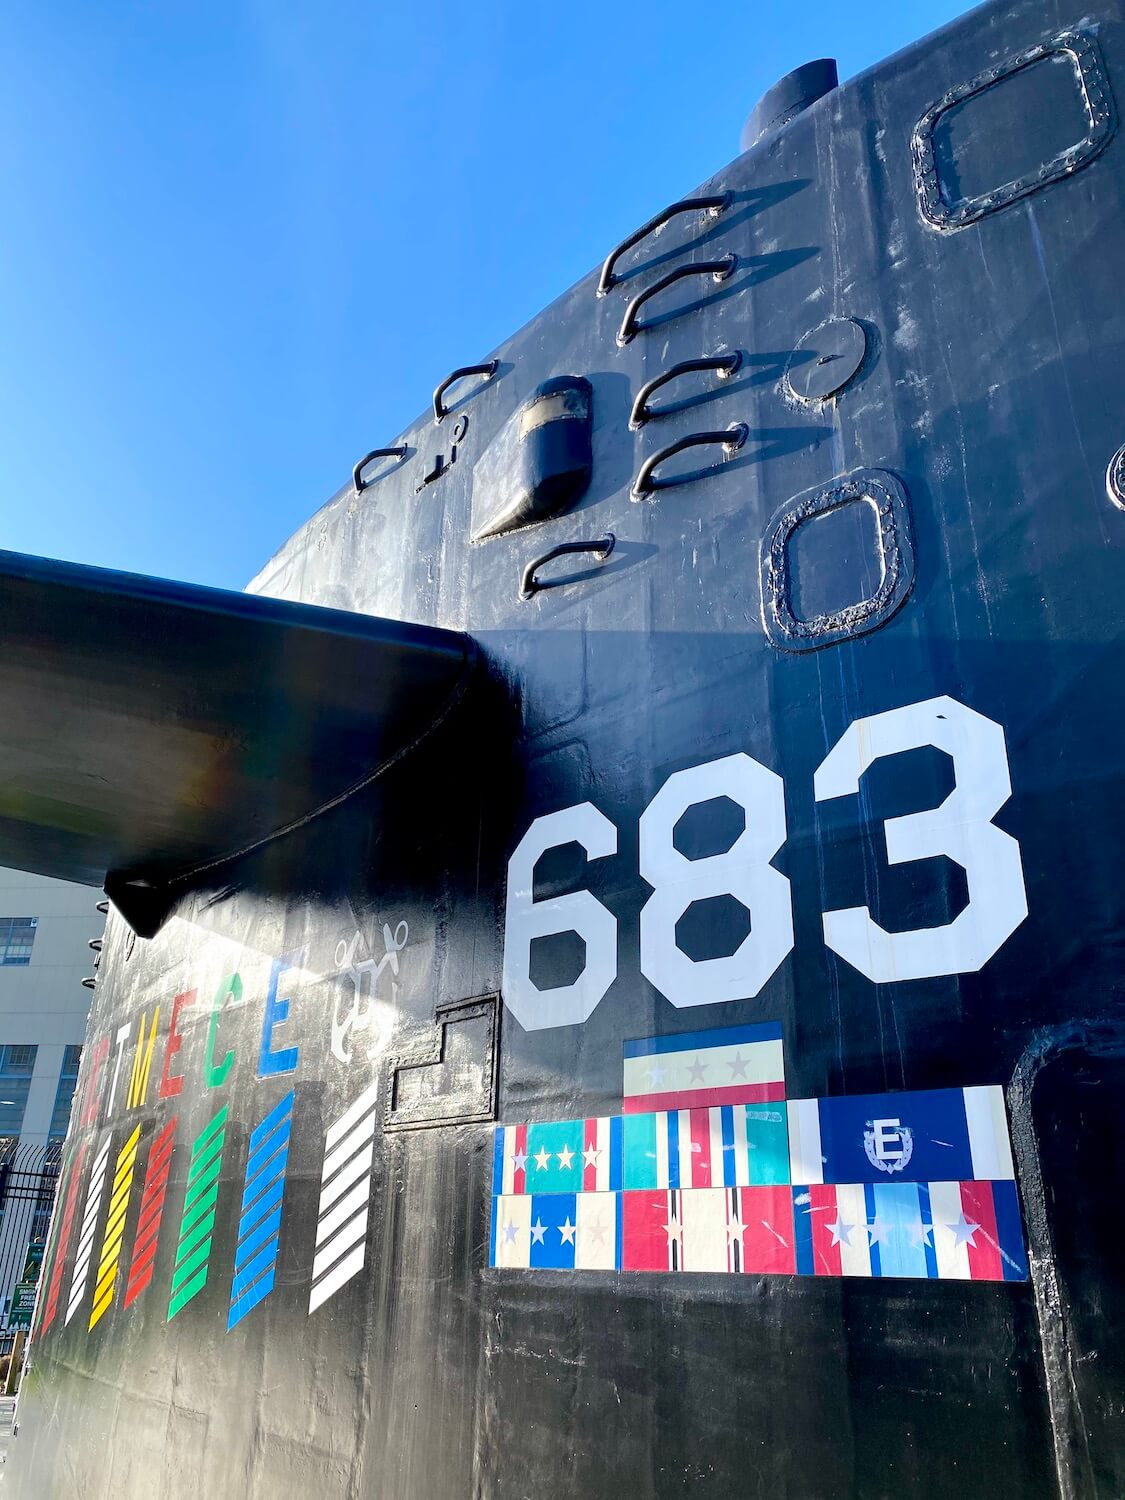 An up close photo of the sail of the USS Parche is great thing to visit in Bremerton on a day trip from Seattle.  The sail is painted black with white numbers and the sky is blue above.